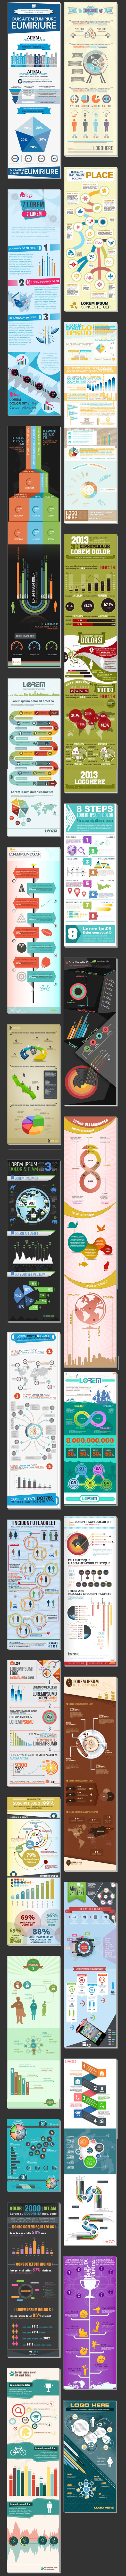 infographics-preview